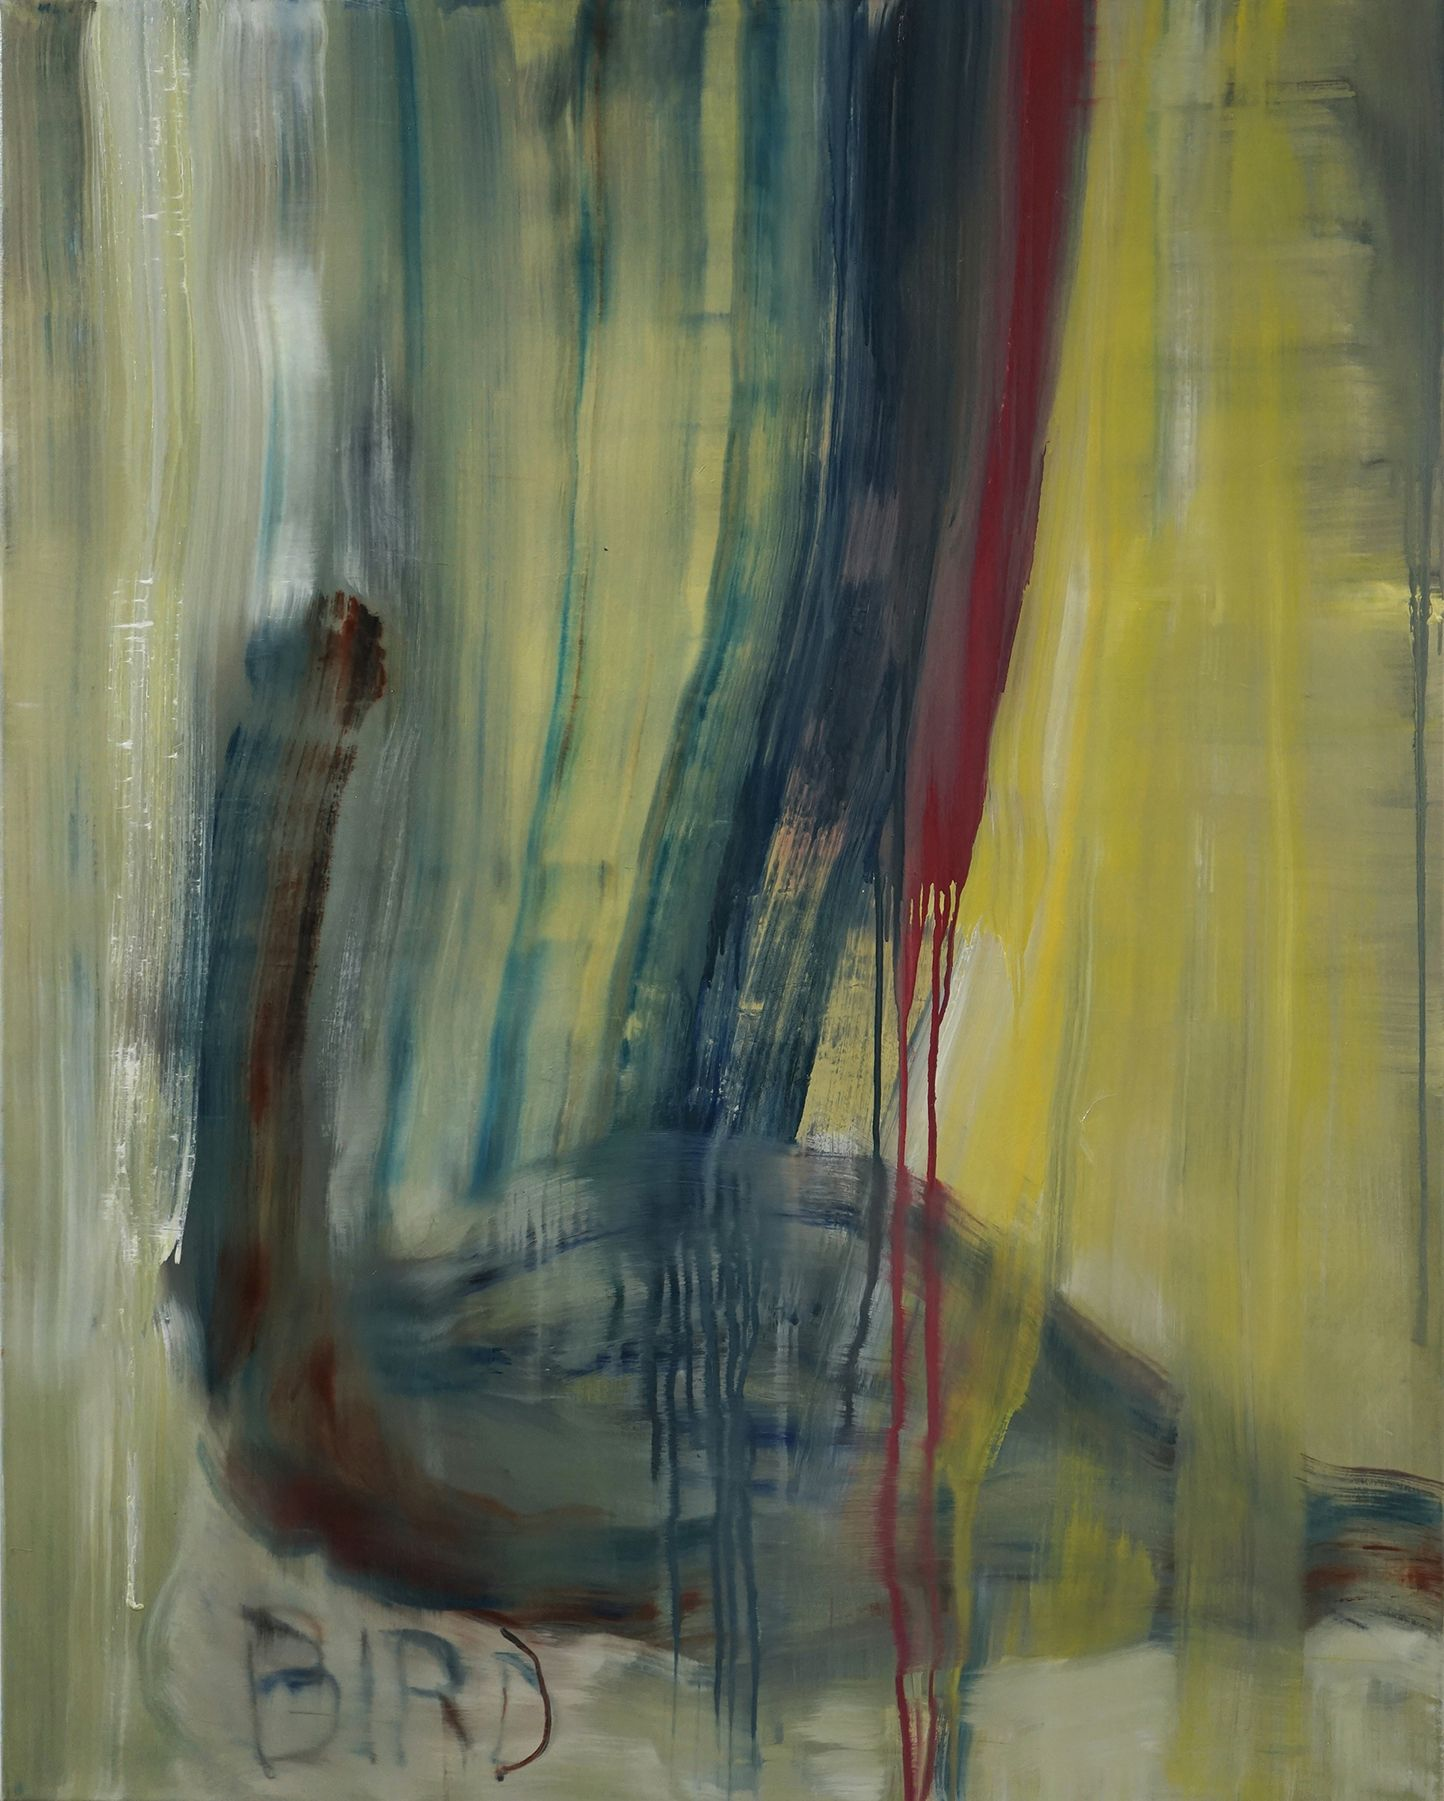 Bird (Norgous Bey's series) - Guy Oberson - Contemporary painting